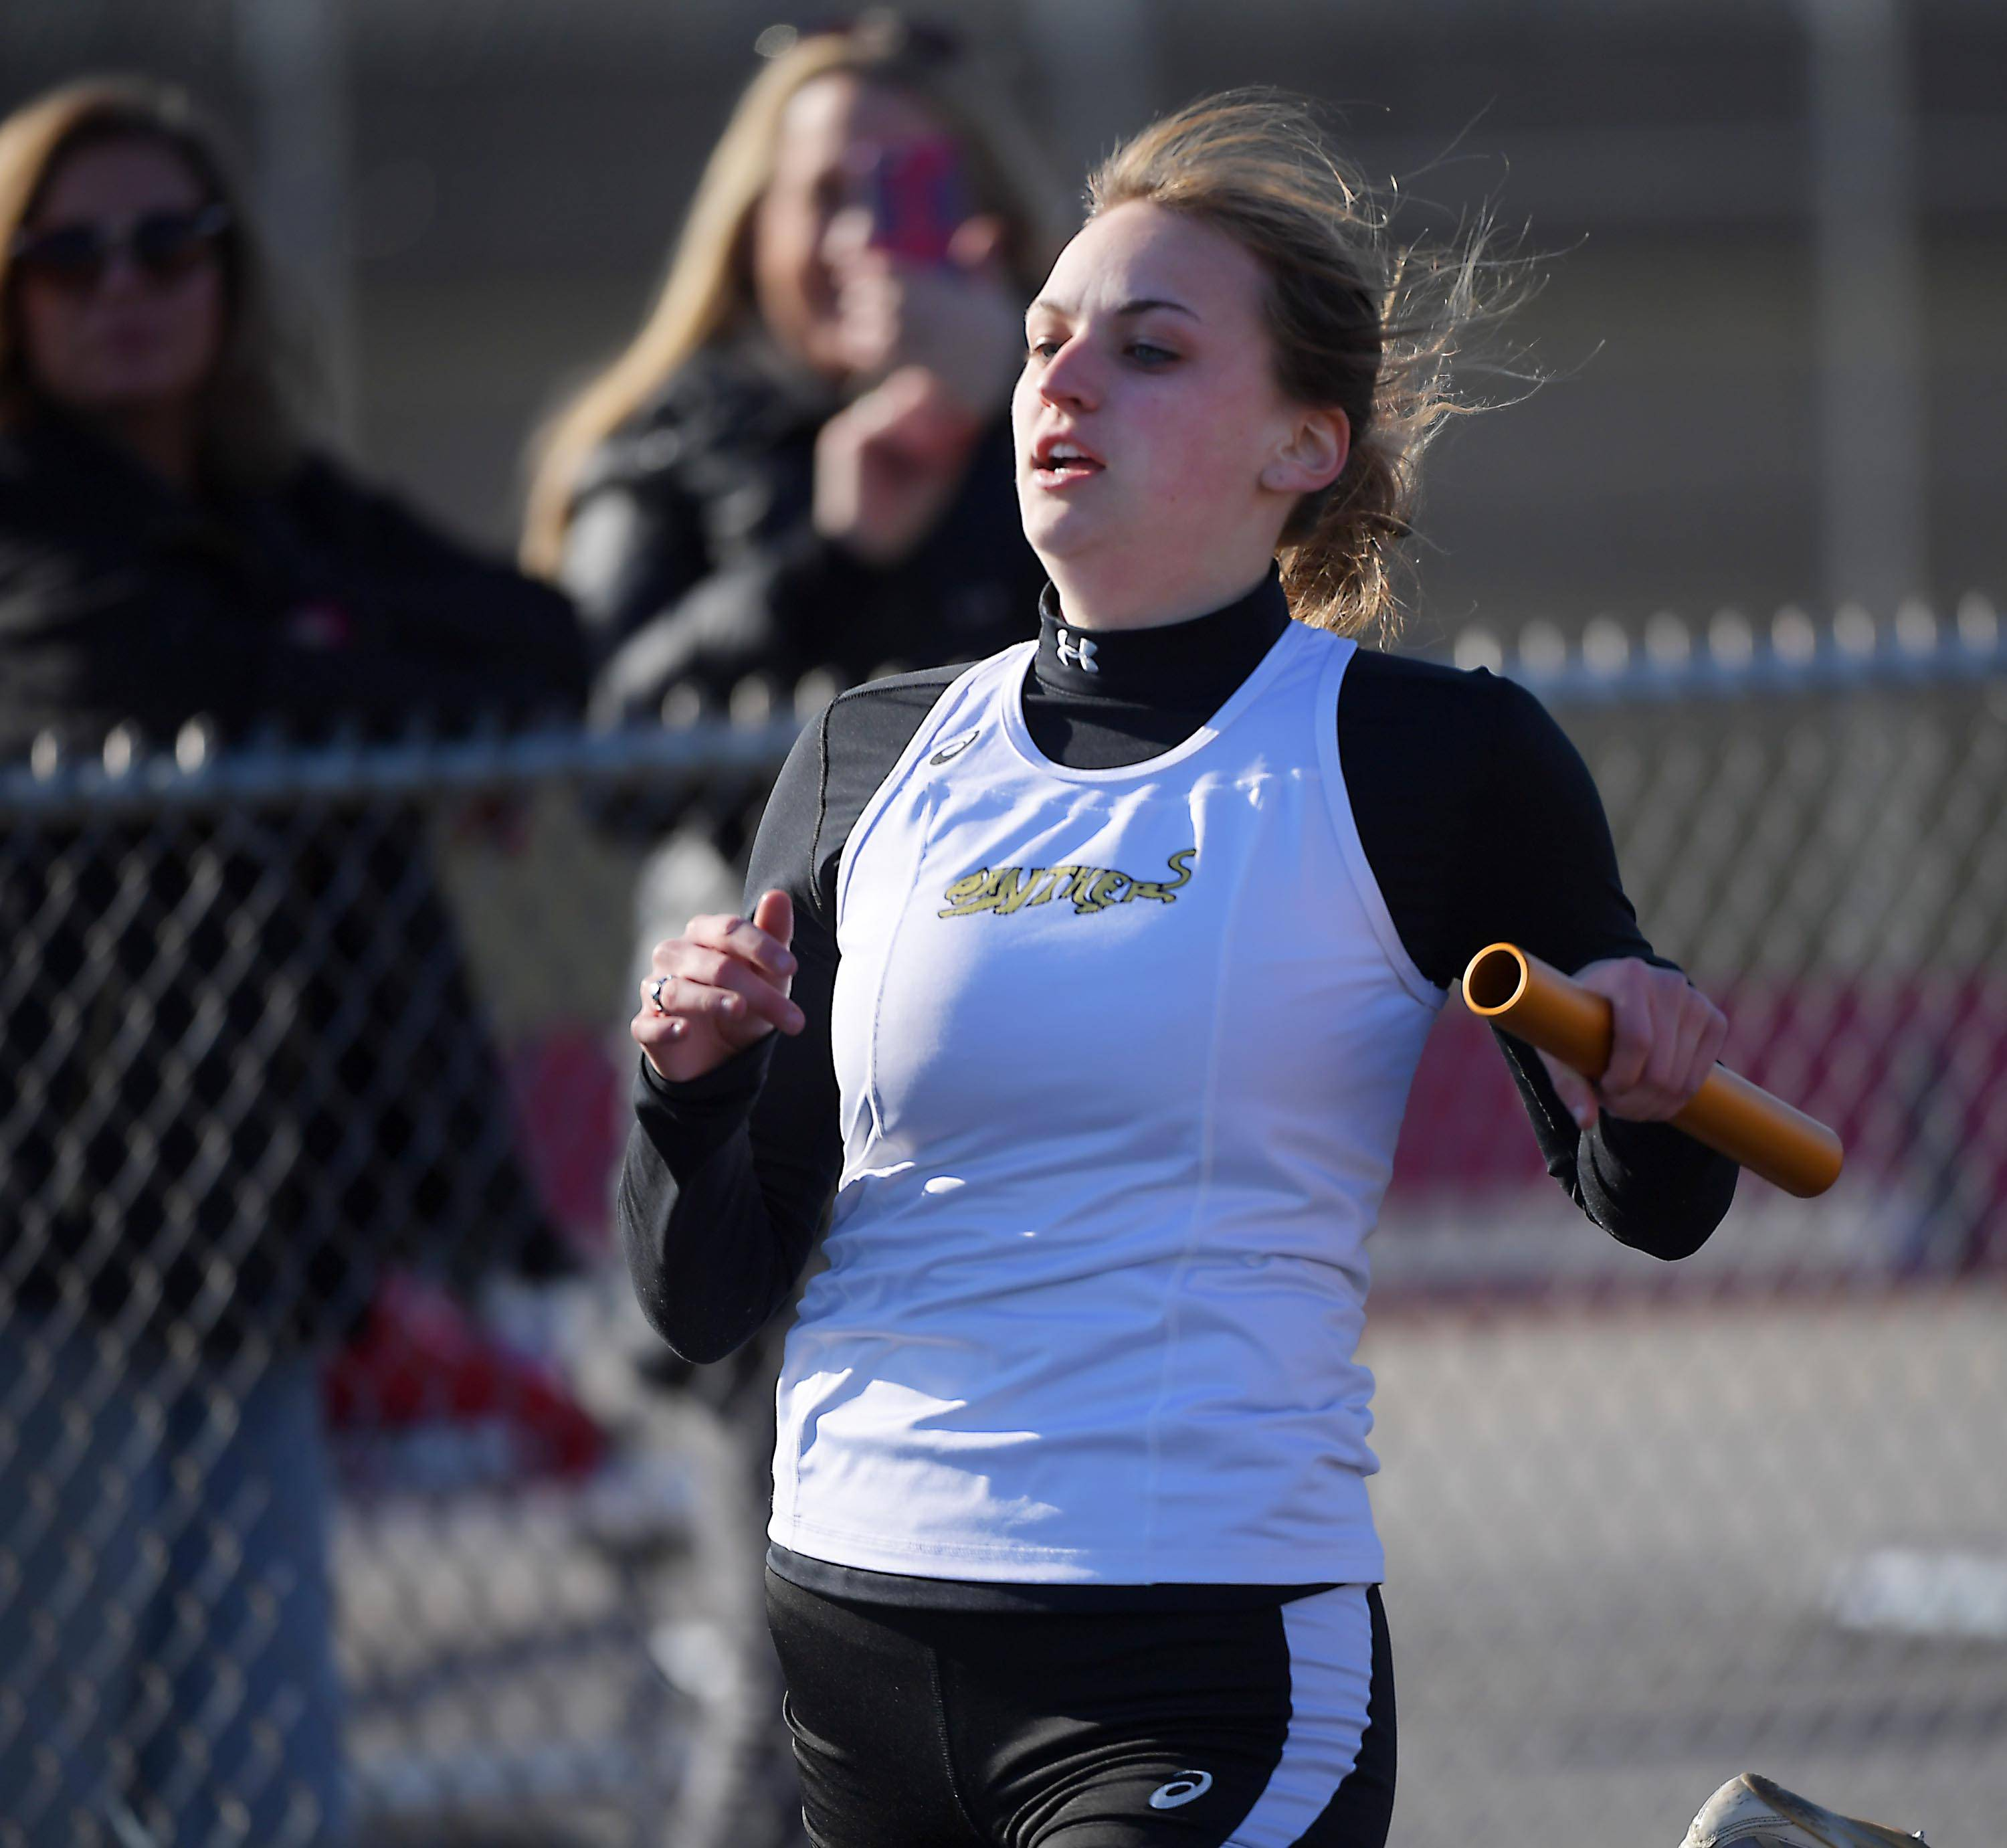 Glenbard North's Lauren Mahoney crosses the finish line as the anchor leg of the 400-meter relay team Thursday at the Batavia girls track invitational.